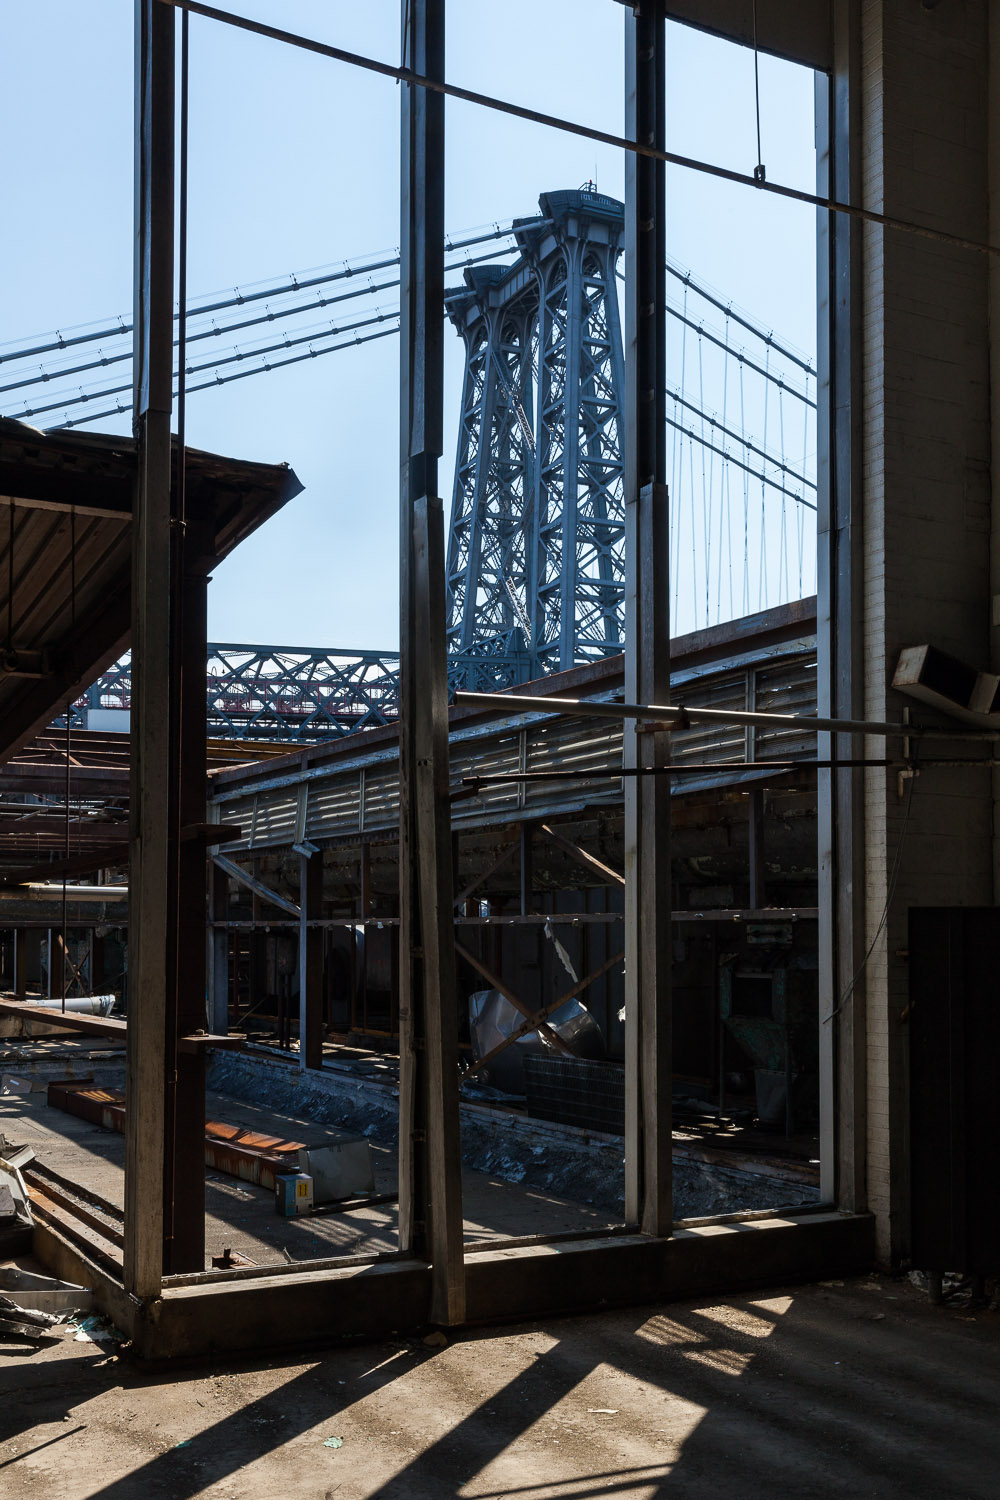 Looking South toward Williamsburg Bridge, Packing House, Domino Sugar Factory